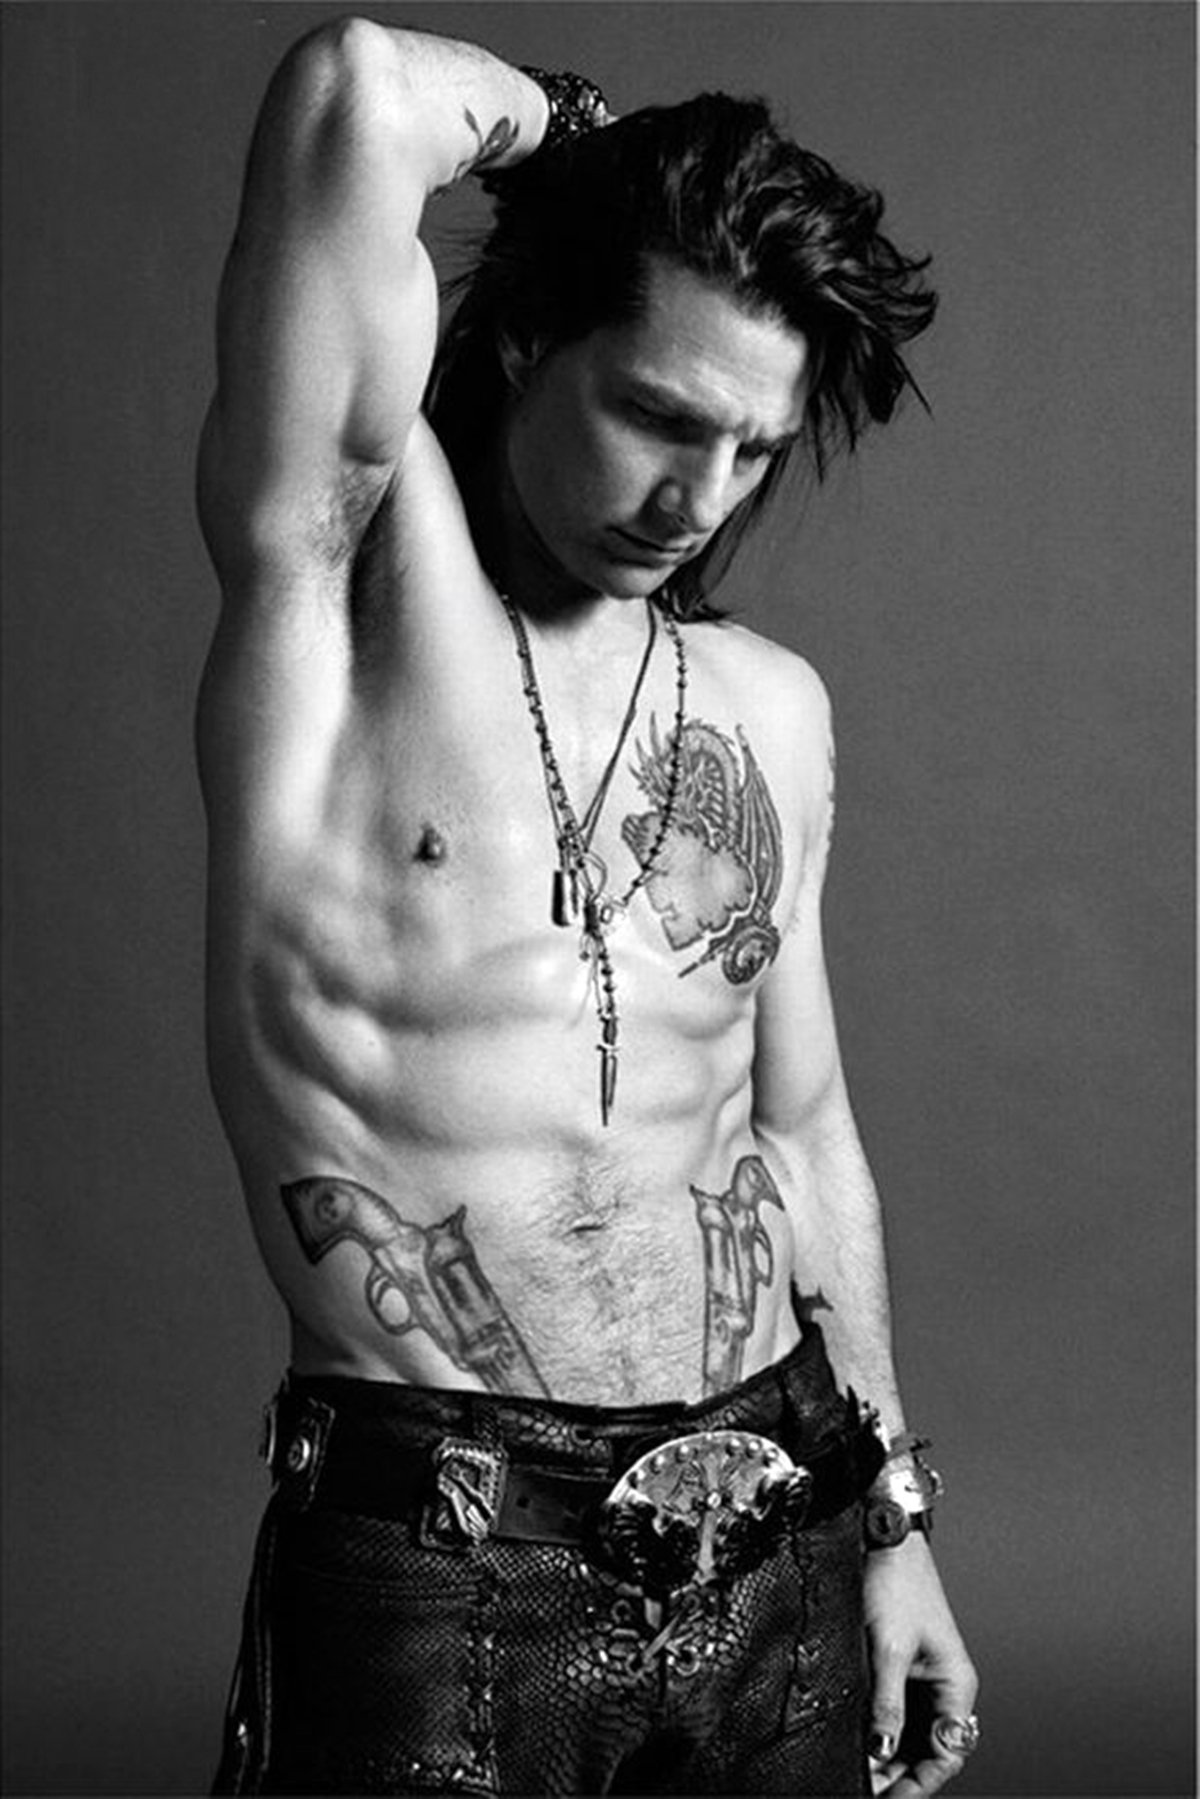 141 The 18 Hottest Photos Of Hollywood Males You've EVER Seen!